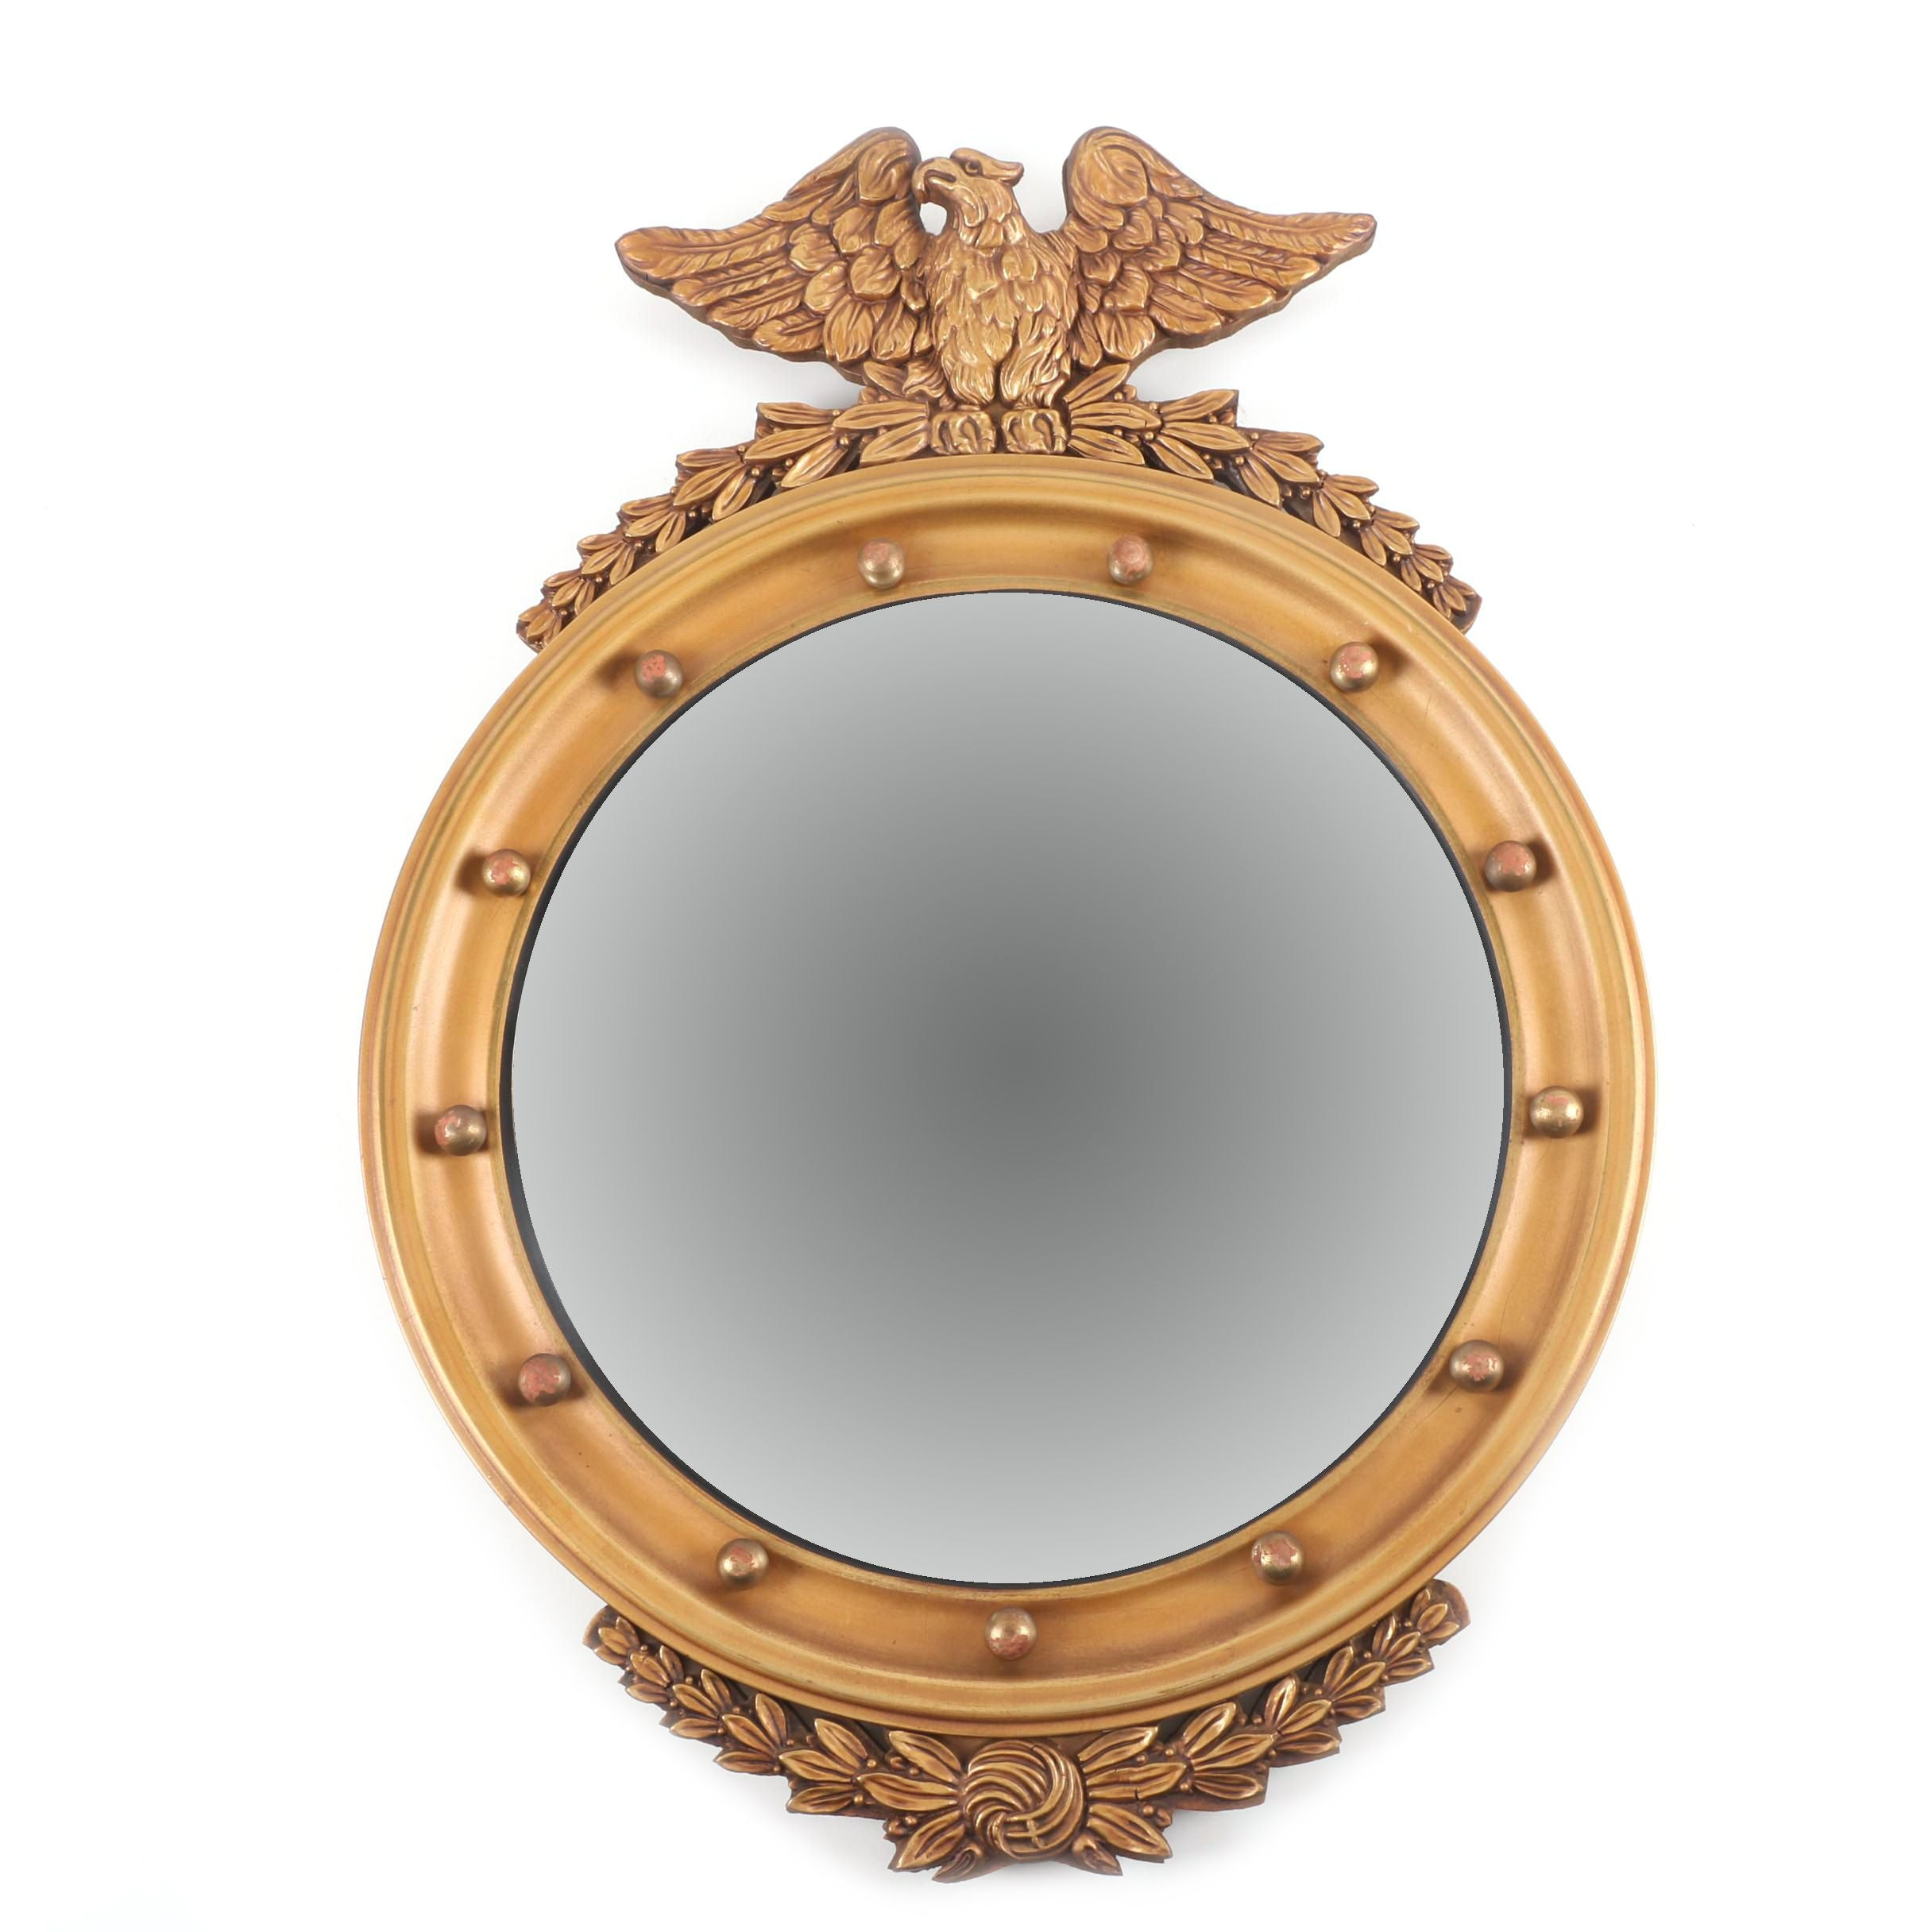 Vintage Federal Style Gold-Toned Convex Wall Mirror with Eagle Crest